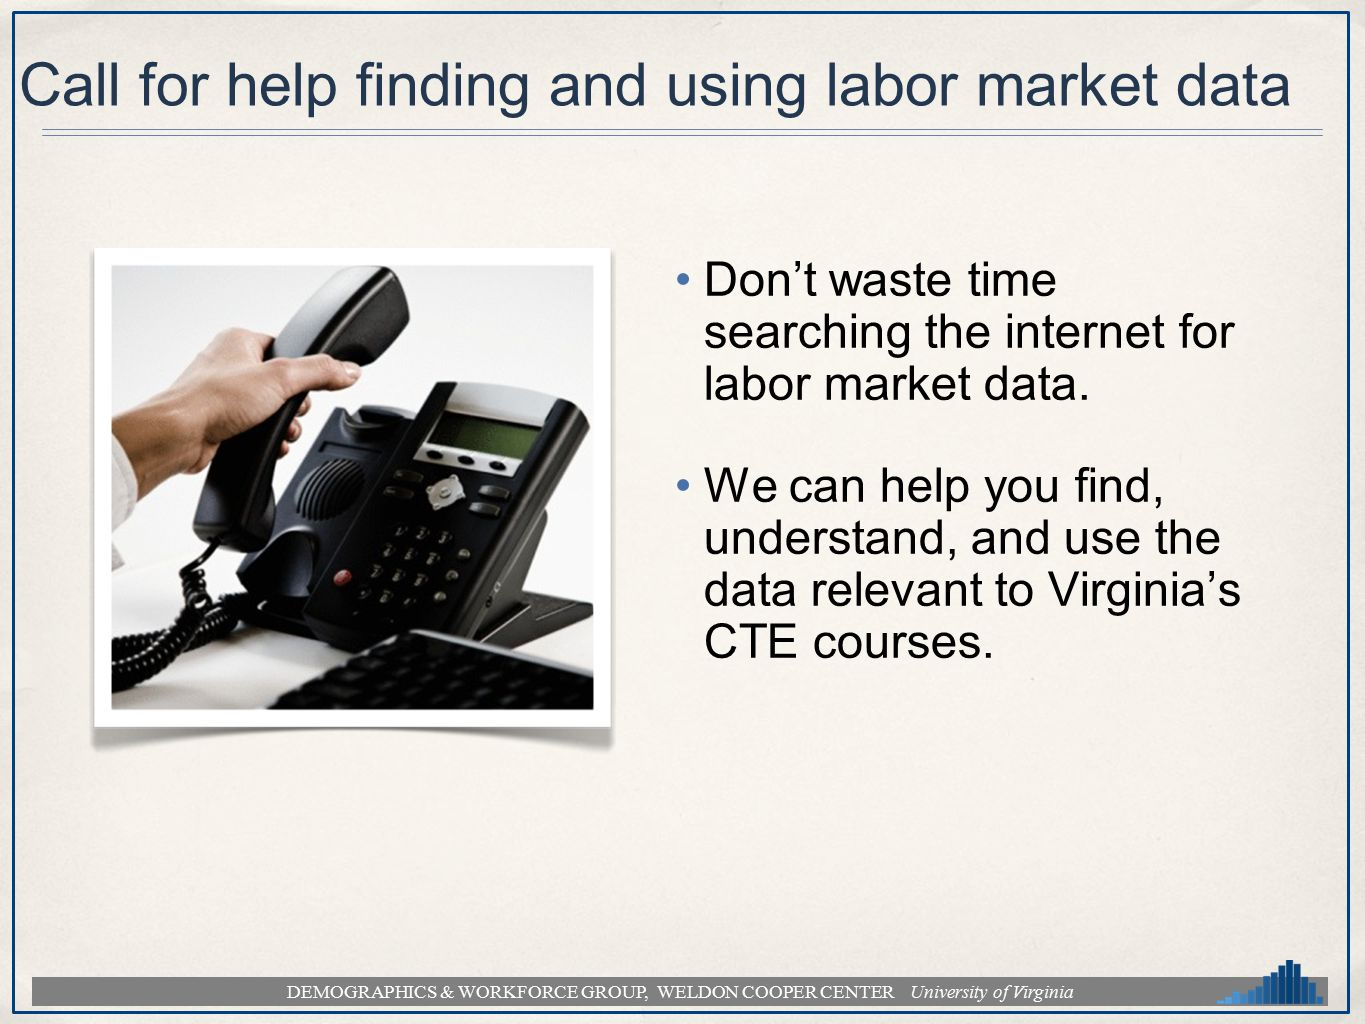 DEMOGRAPHICS & WORKFORCE GROUP, WELDON COOPER CENTER University of Virginia Call for help finding and using labor market data Dont waste time searchin